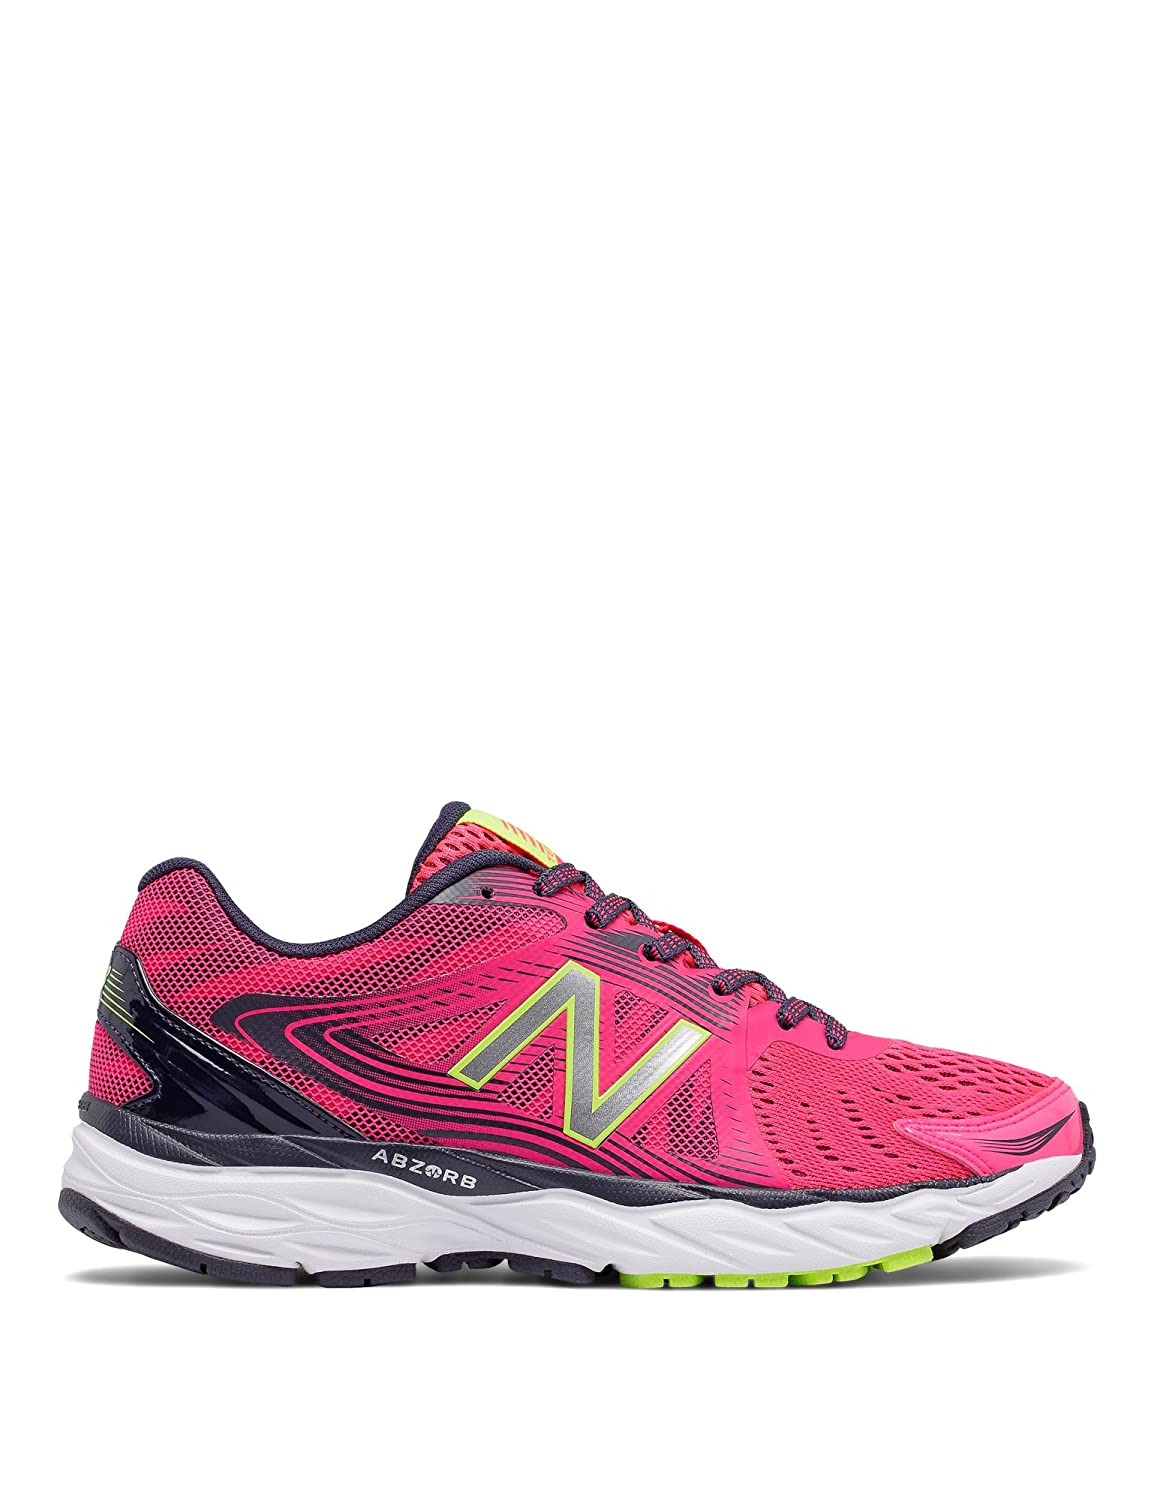 New Balance Women's W680v4 Running Shoe B01FSJCNSO 5 D US|Alpha Pink/Outer Space/Lime Glow